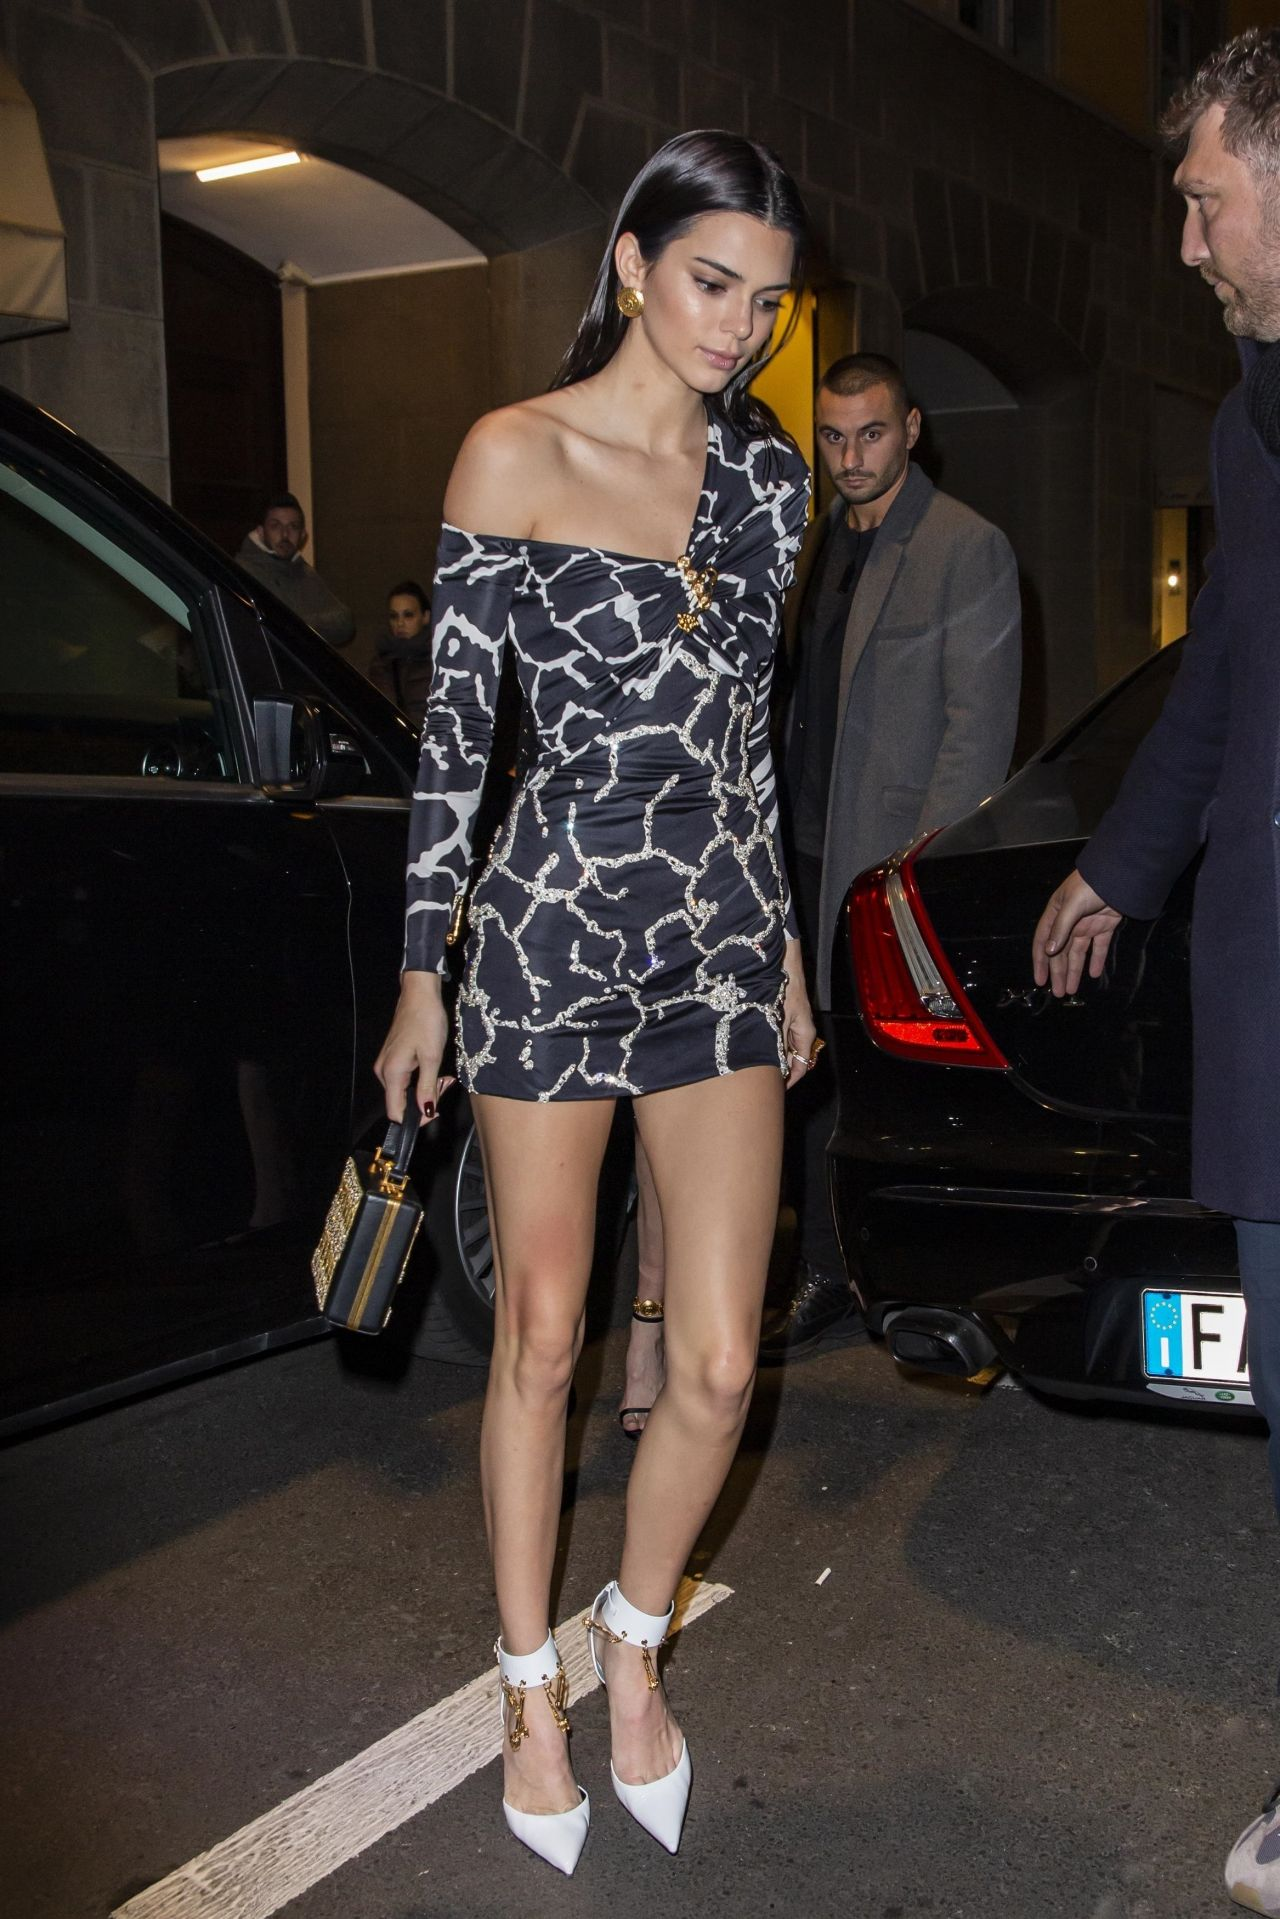 Kendall Jenner Night Out Style Milan 02 22 2019